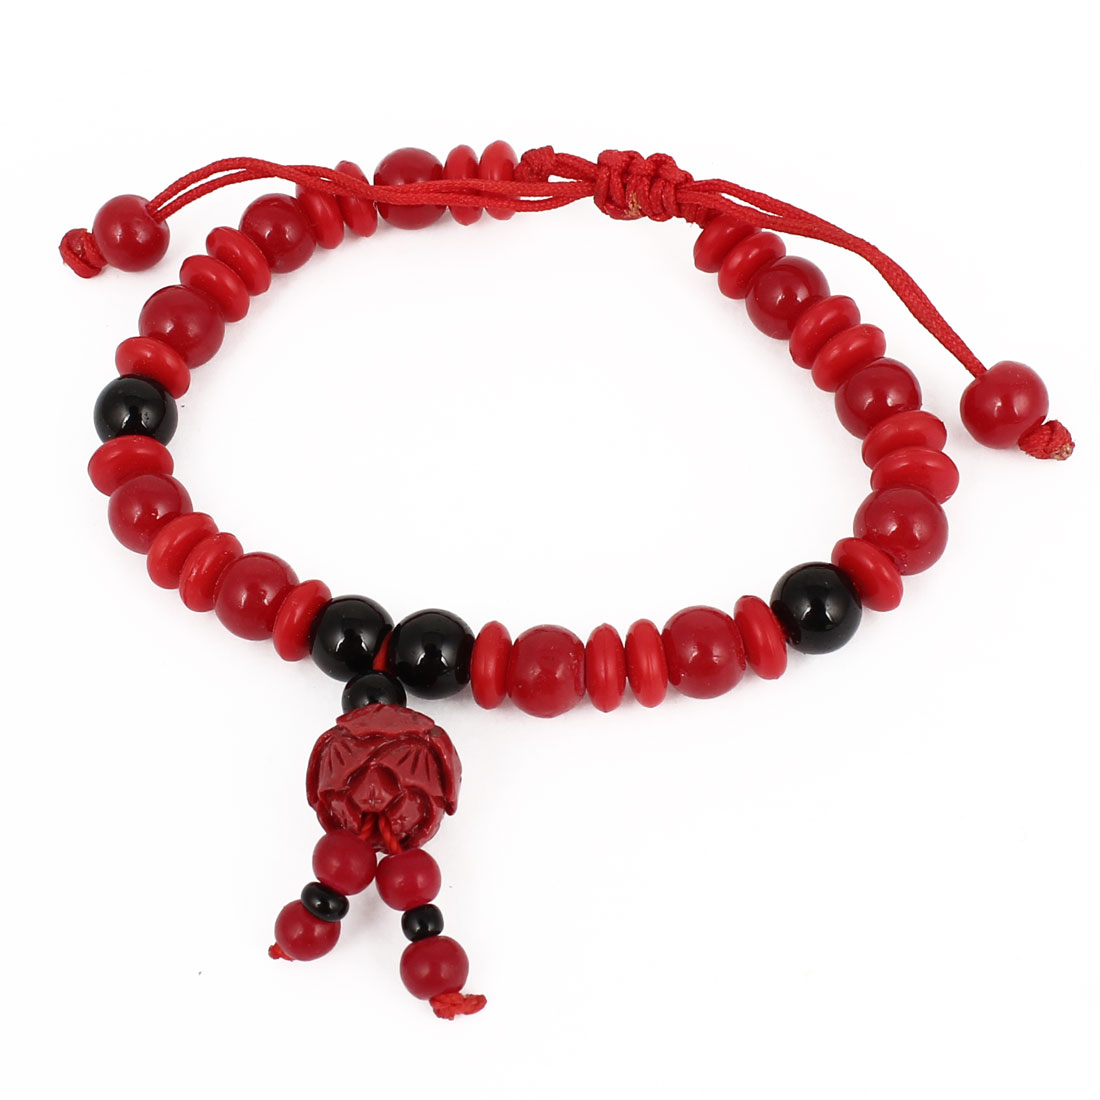 Plastic Carved Flower Bud Accent Black Red Beads Draw String Wrist Bracelet